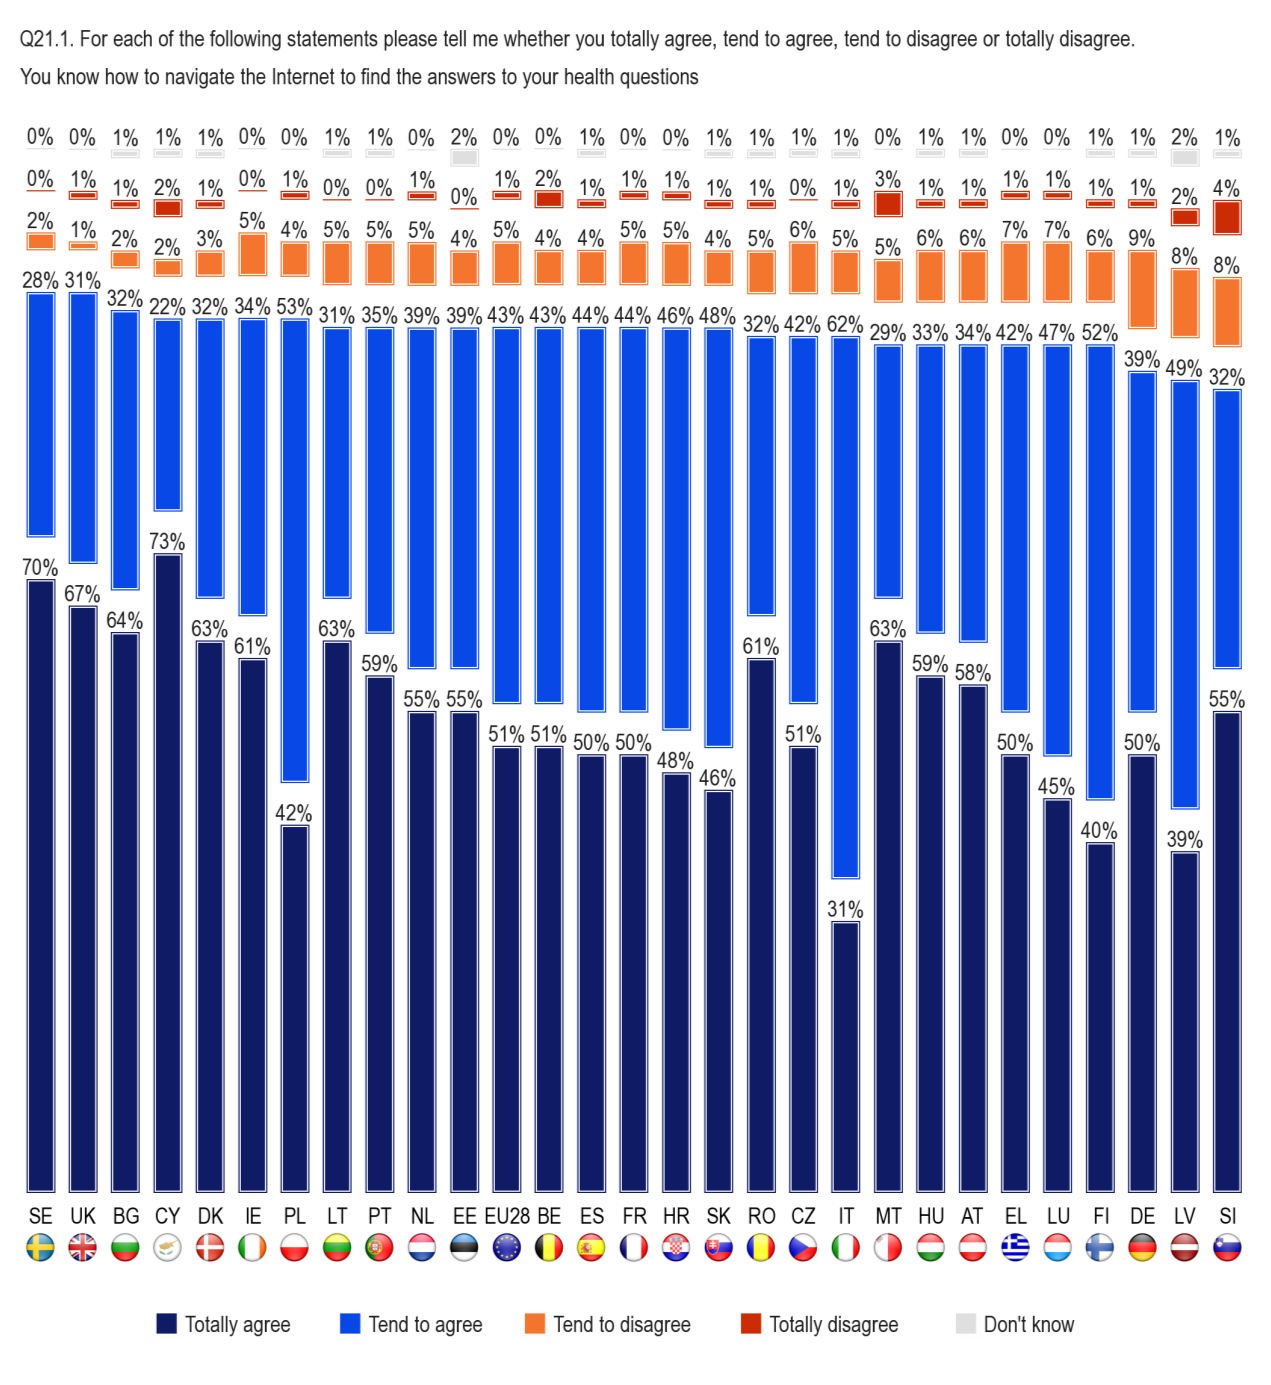 FLASH EUROBAROMETER In all but three Member States, more than nine out of ten respondents agree that they know how to navigate the Internet to find answers to their health-related questions, with the